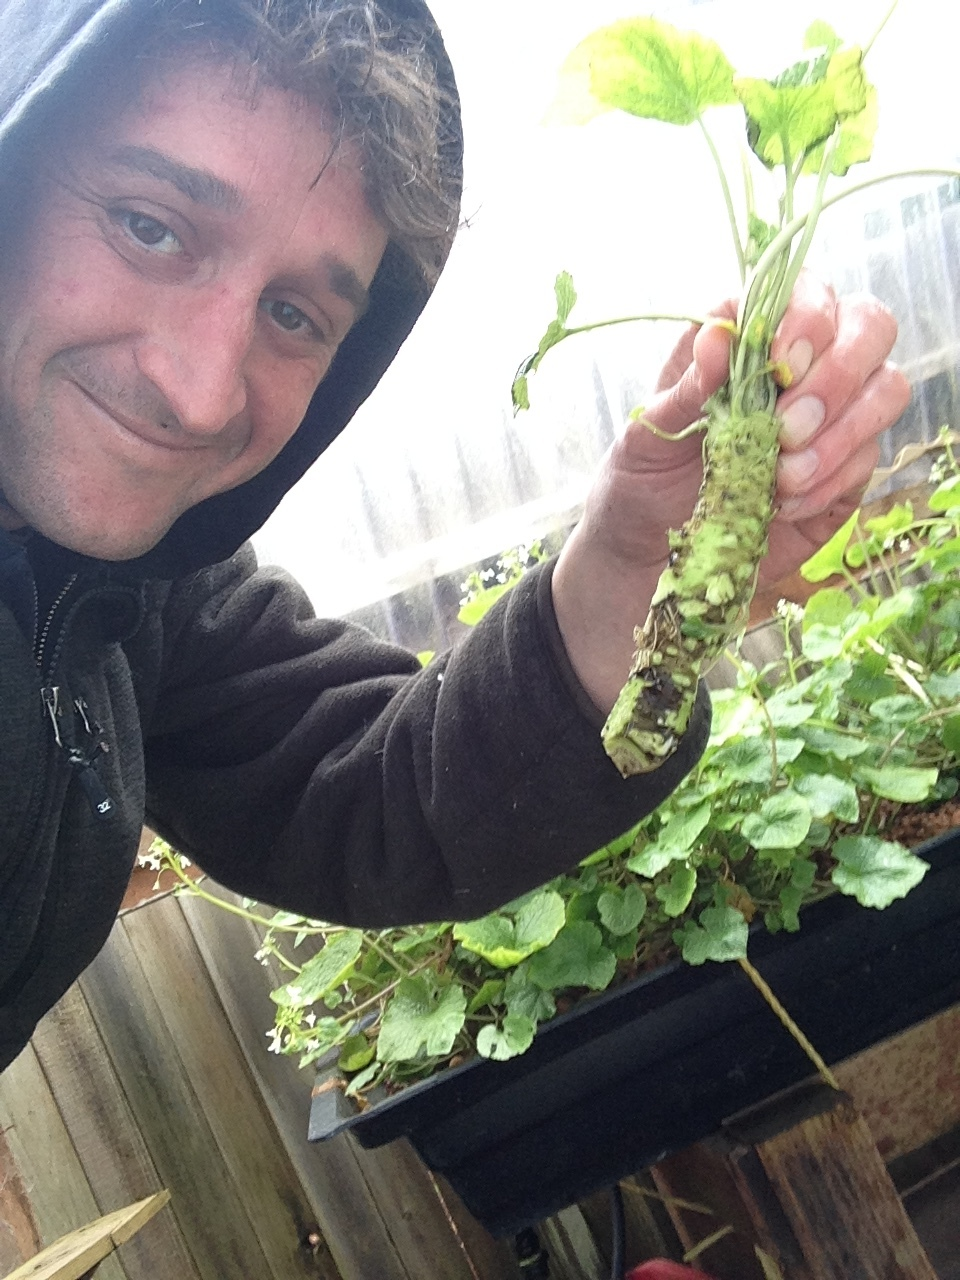 """ I finally did it! My first ""big"" harvest after two years:) Thank you so much for your dedication and education for this plant. It has been a great gardening experience!  Best wishes Robbie (from eureka ca;)""    That looks a very healthy and tasty wasabi there Mr. Olson!"